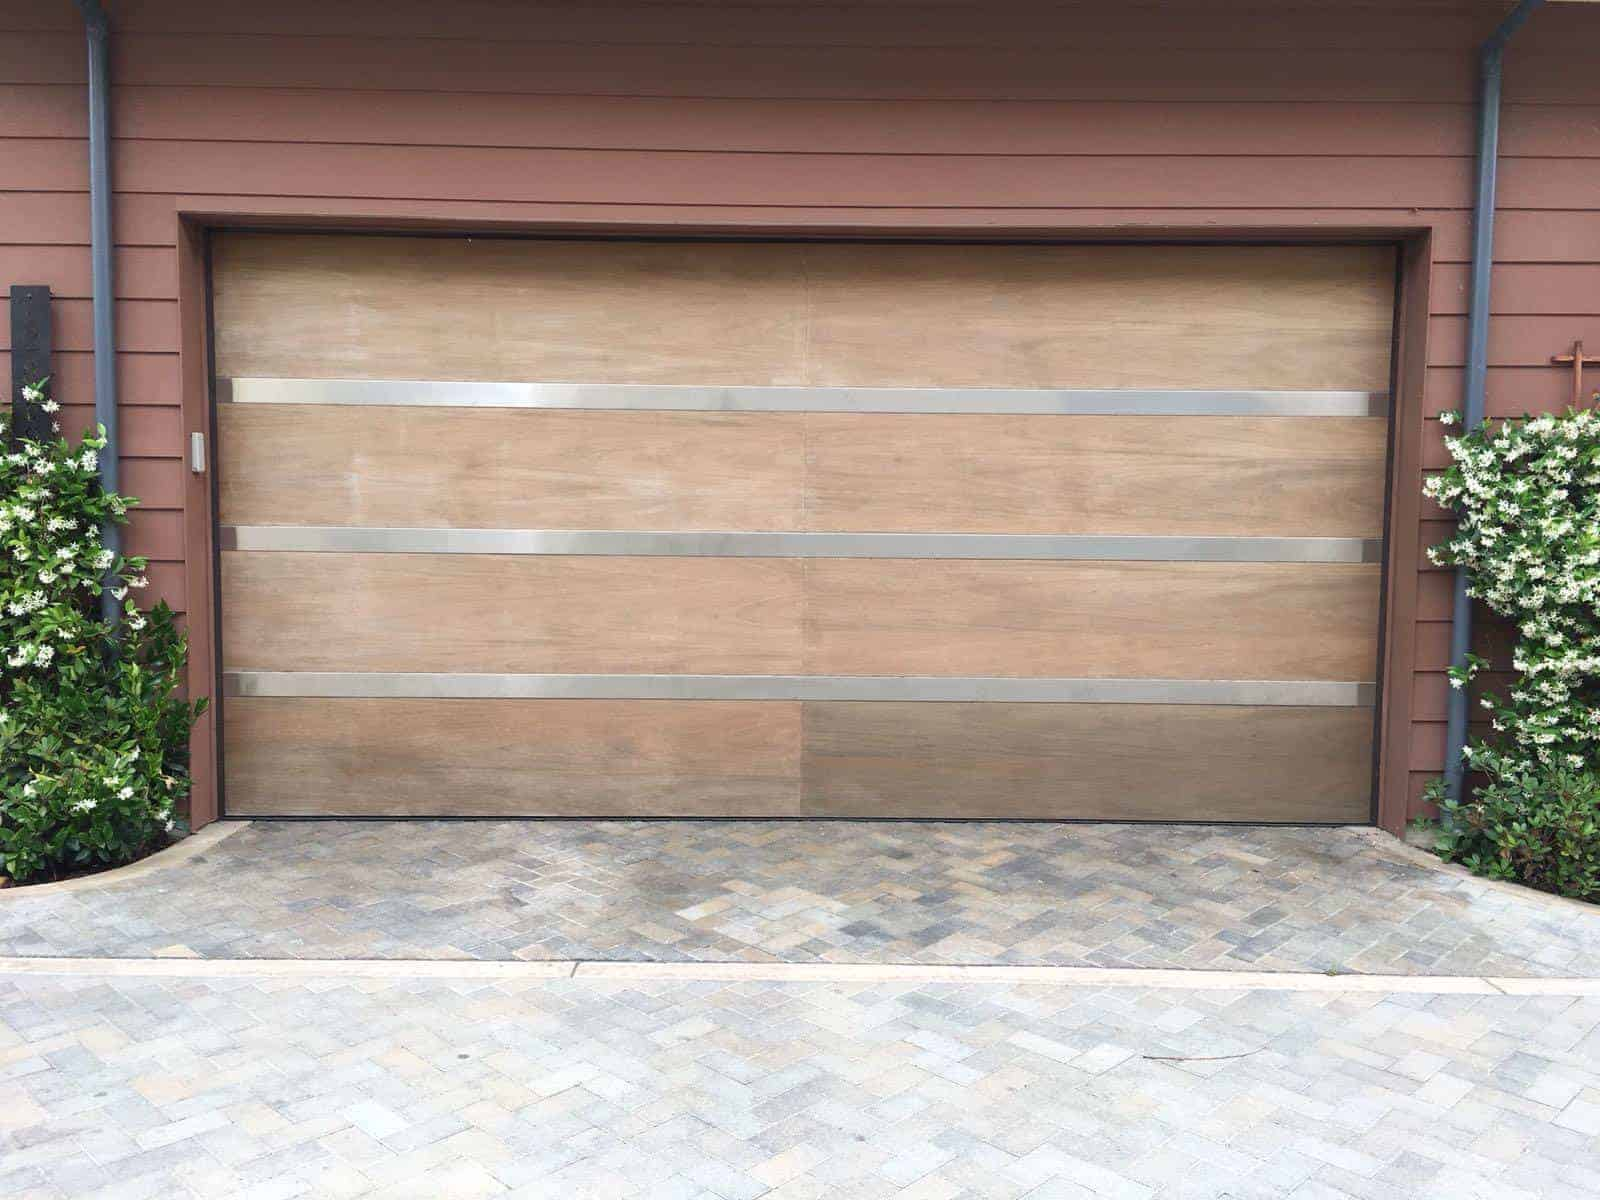 South Salt Lake UT Garage Door Repair Services